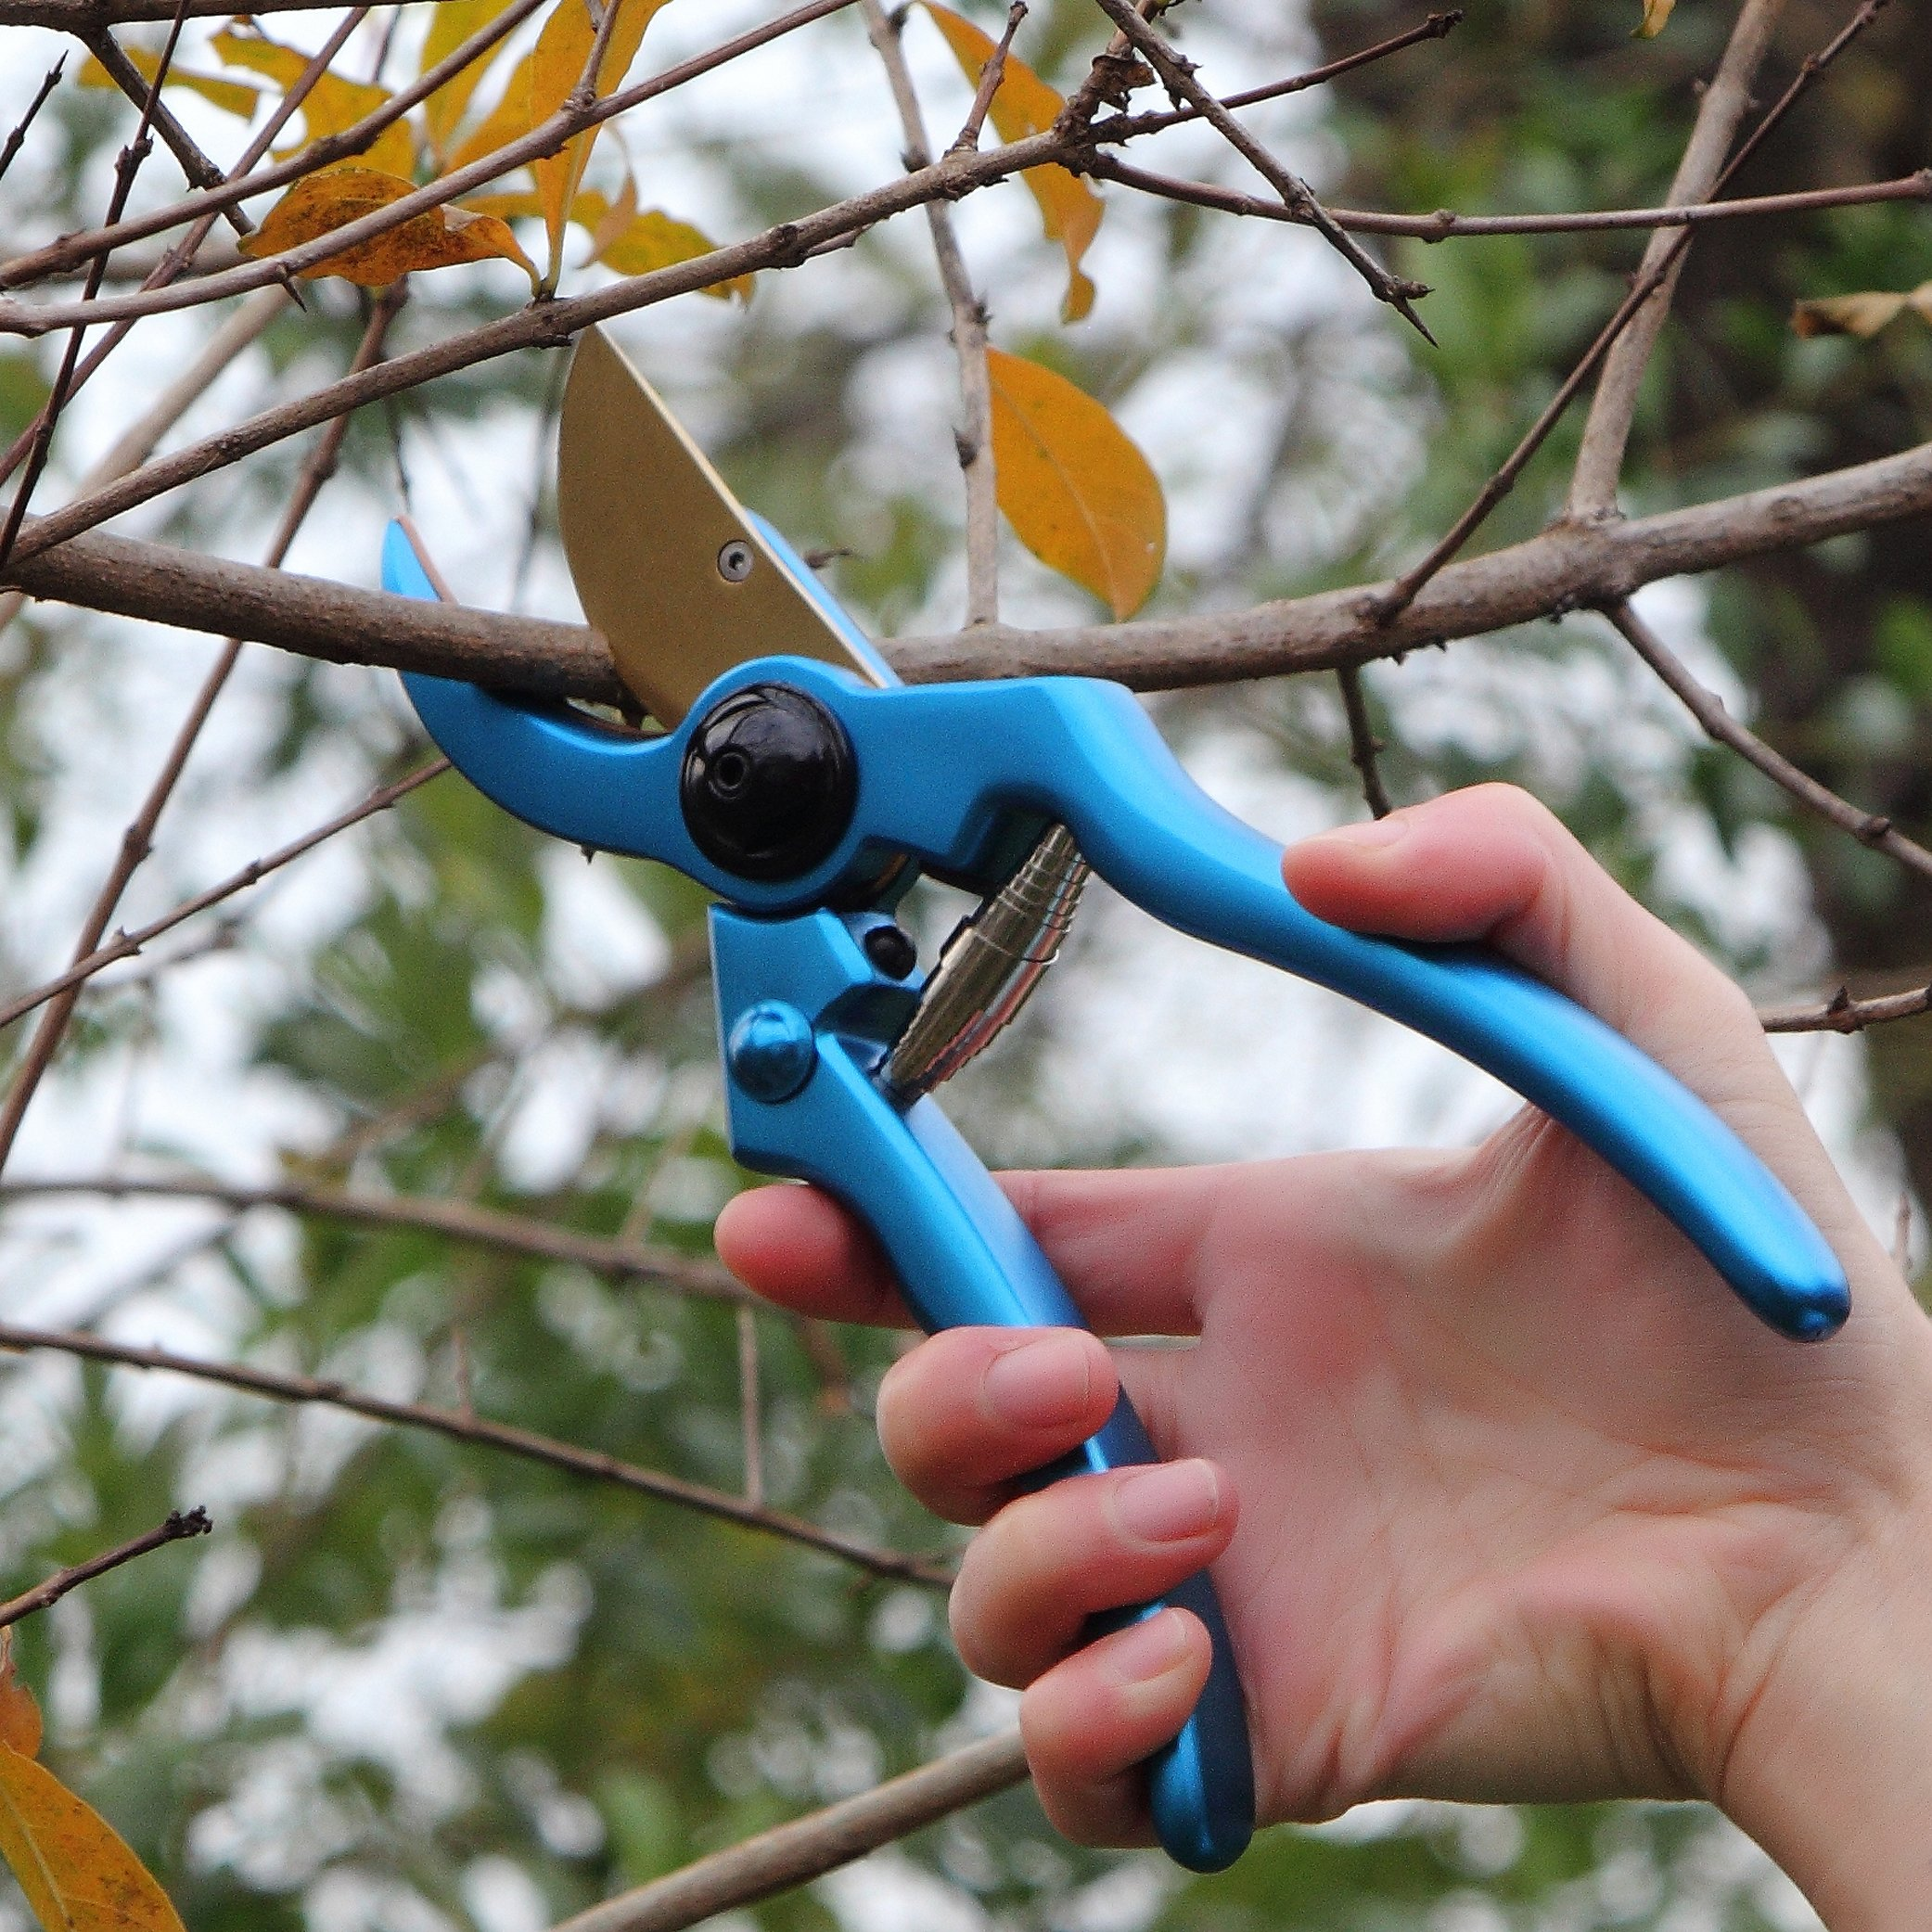 Profession Aluminum Garden Pruning Shears – Perfect Bypass Tree Trimmer, Garden Shears, Hand Pruner with Safety Lock System (Blue)